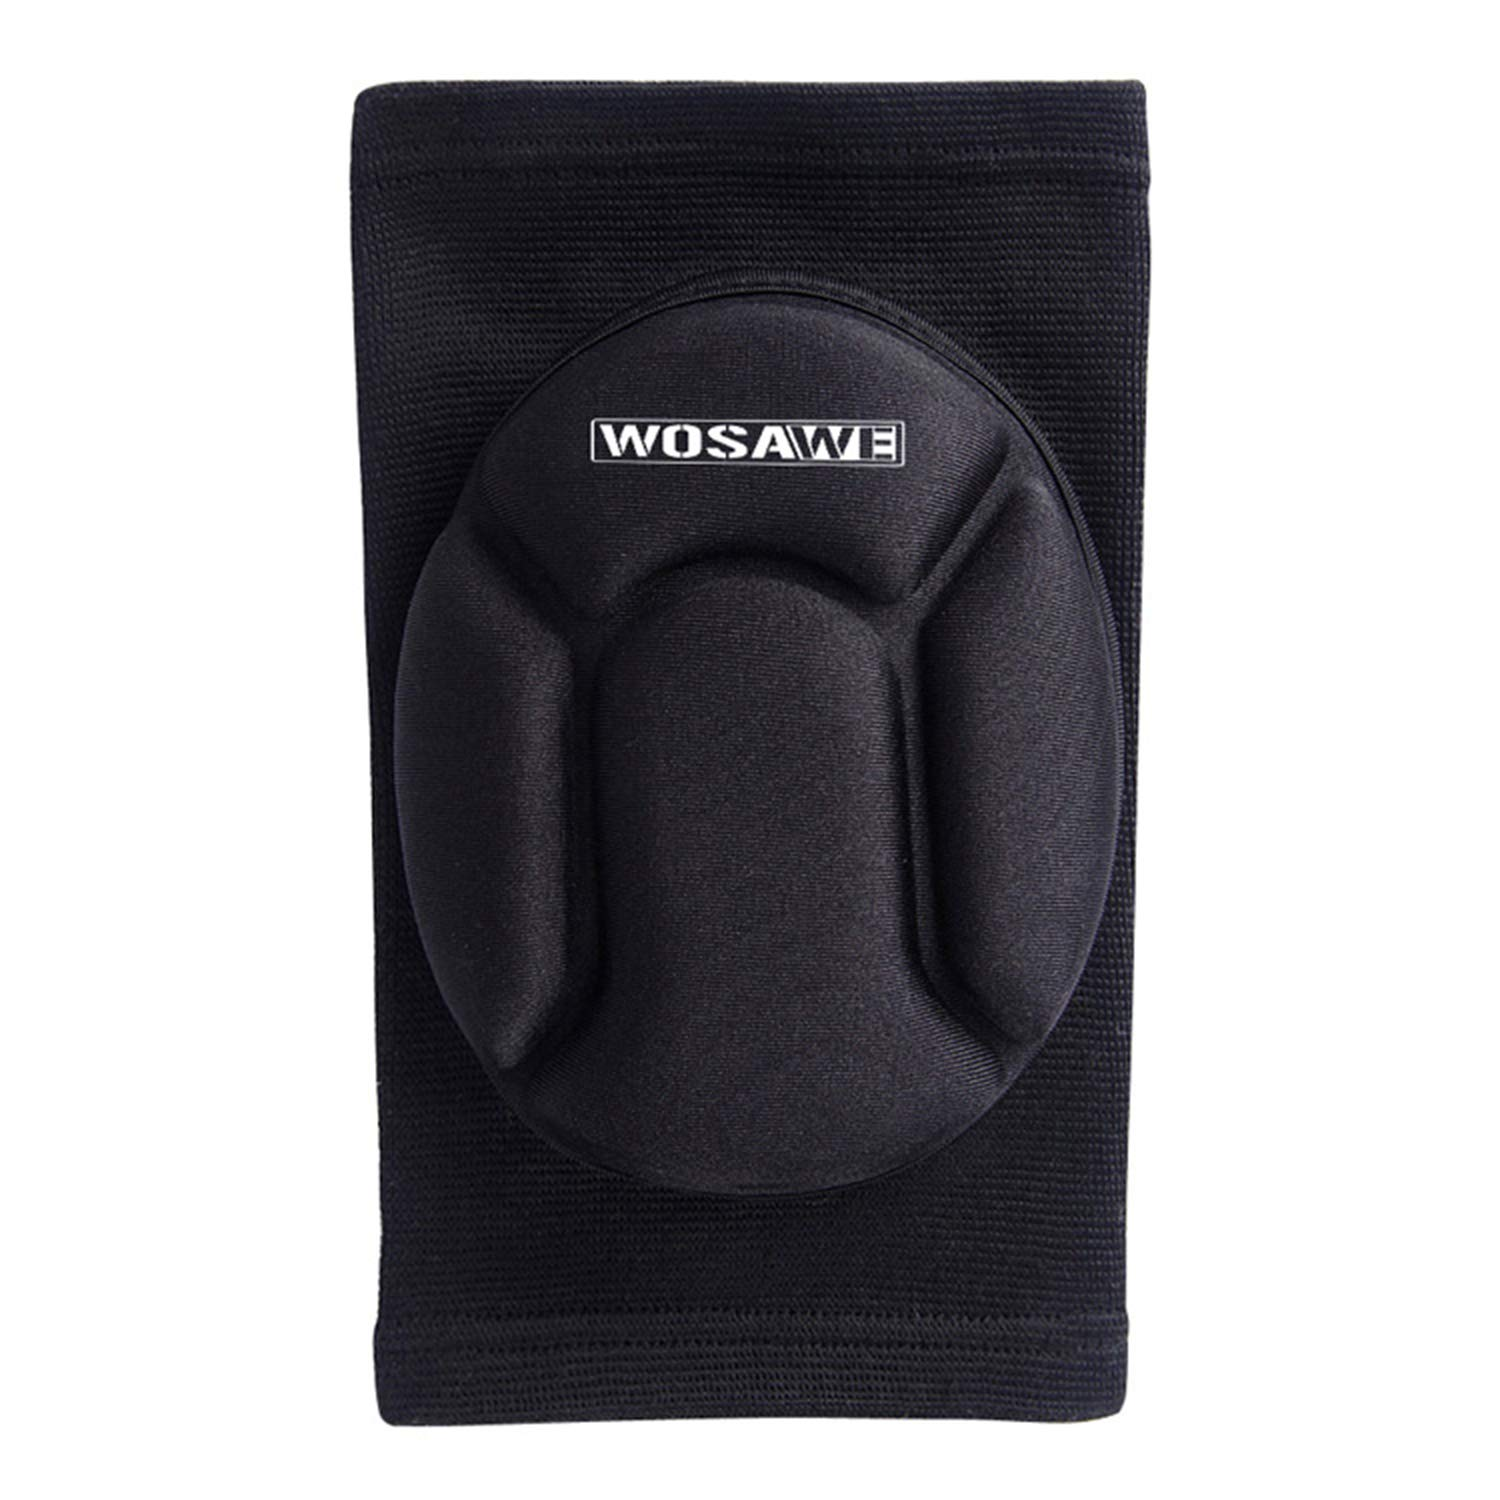 Elbow Pads//Knee Pads,WOSAWE Outdoor Cycling Sports Fitness Basketball Running Anti-Strain Knee Pads Single